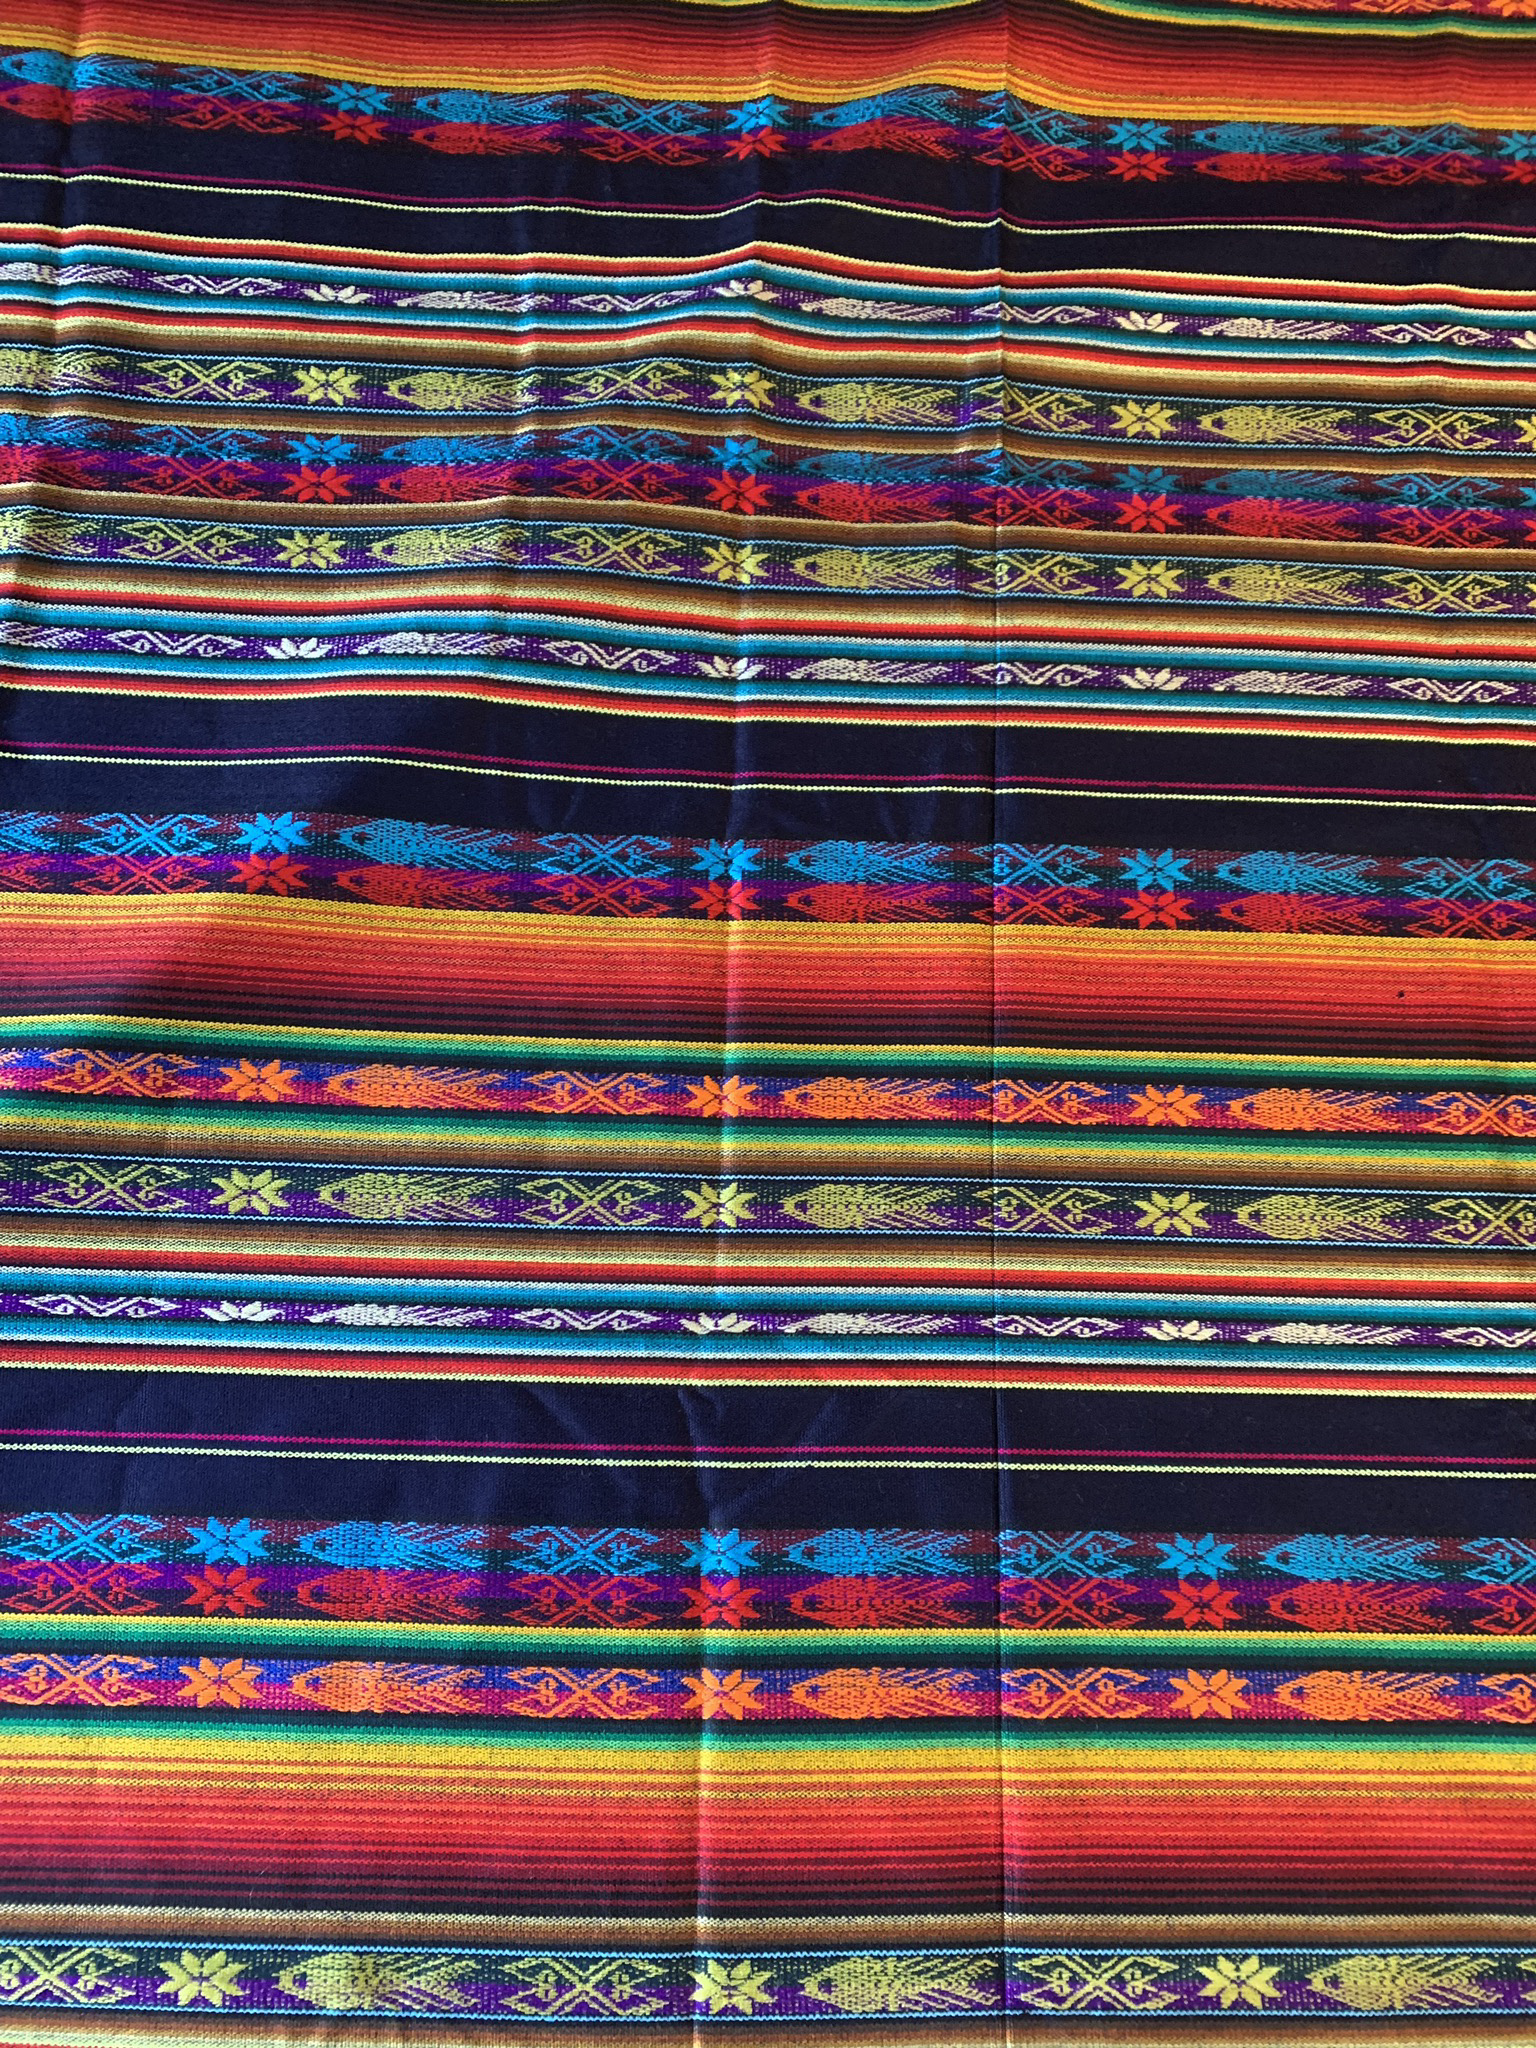 Large Mexican Tablecloth  00092